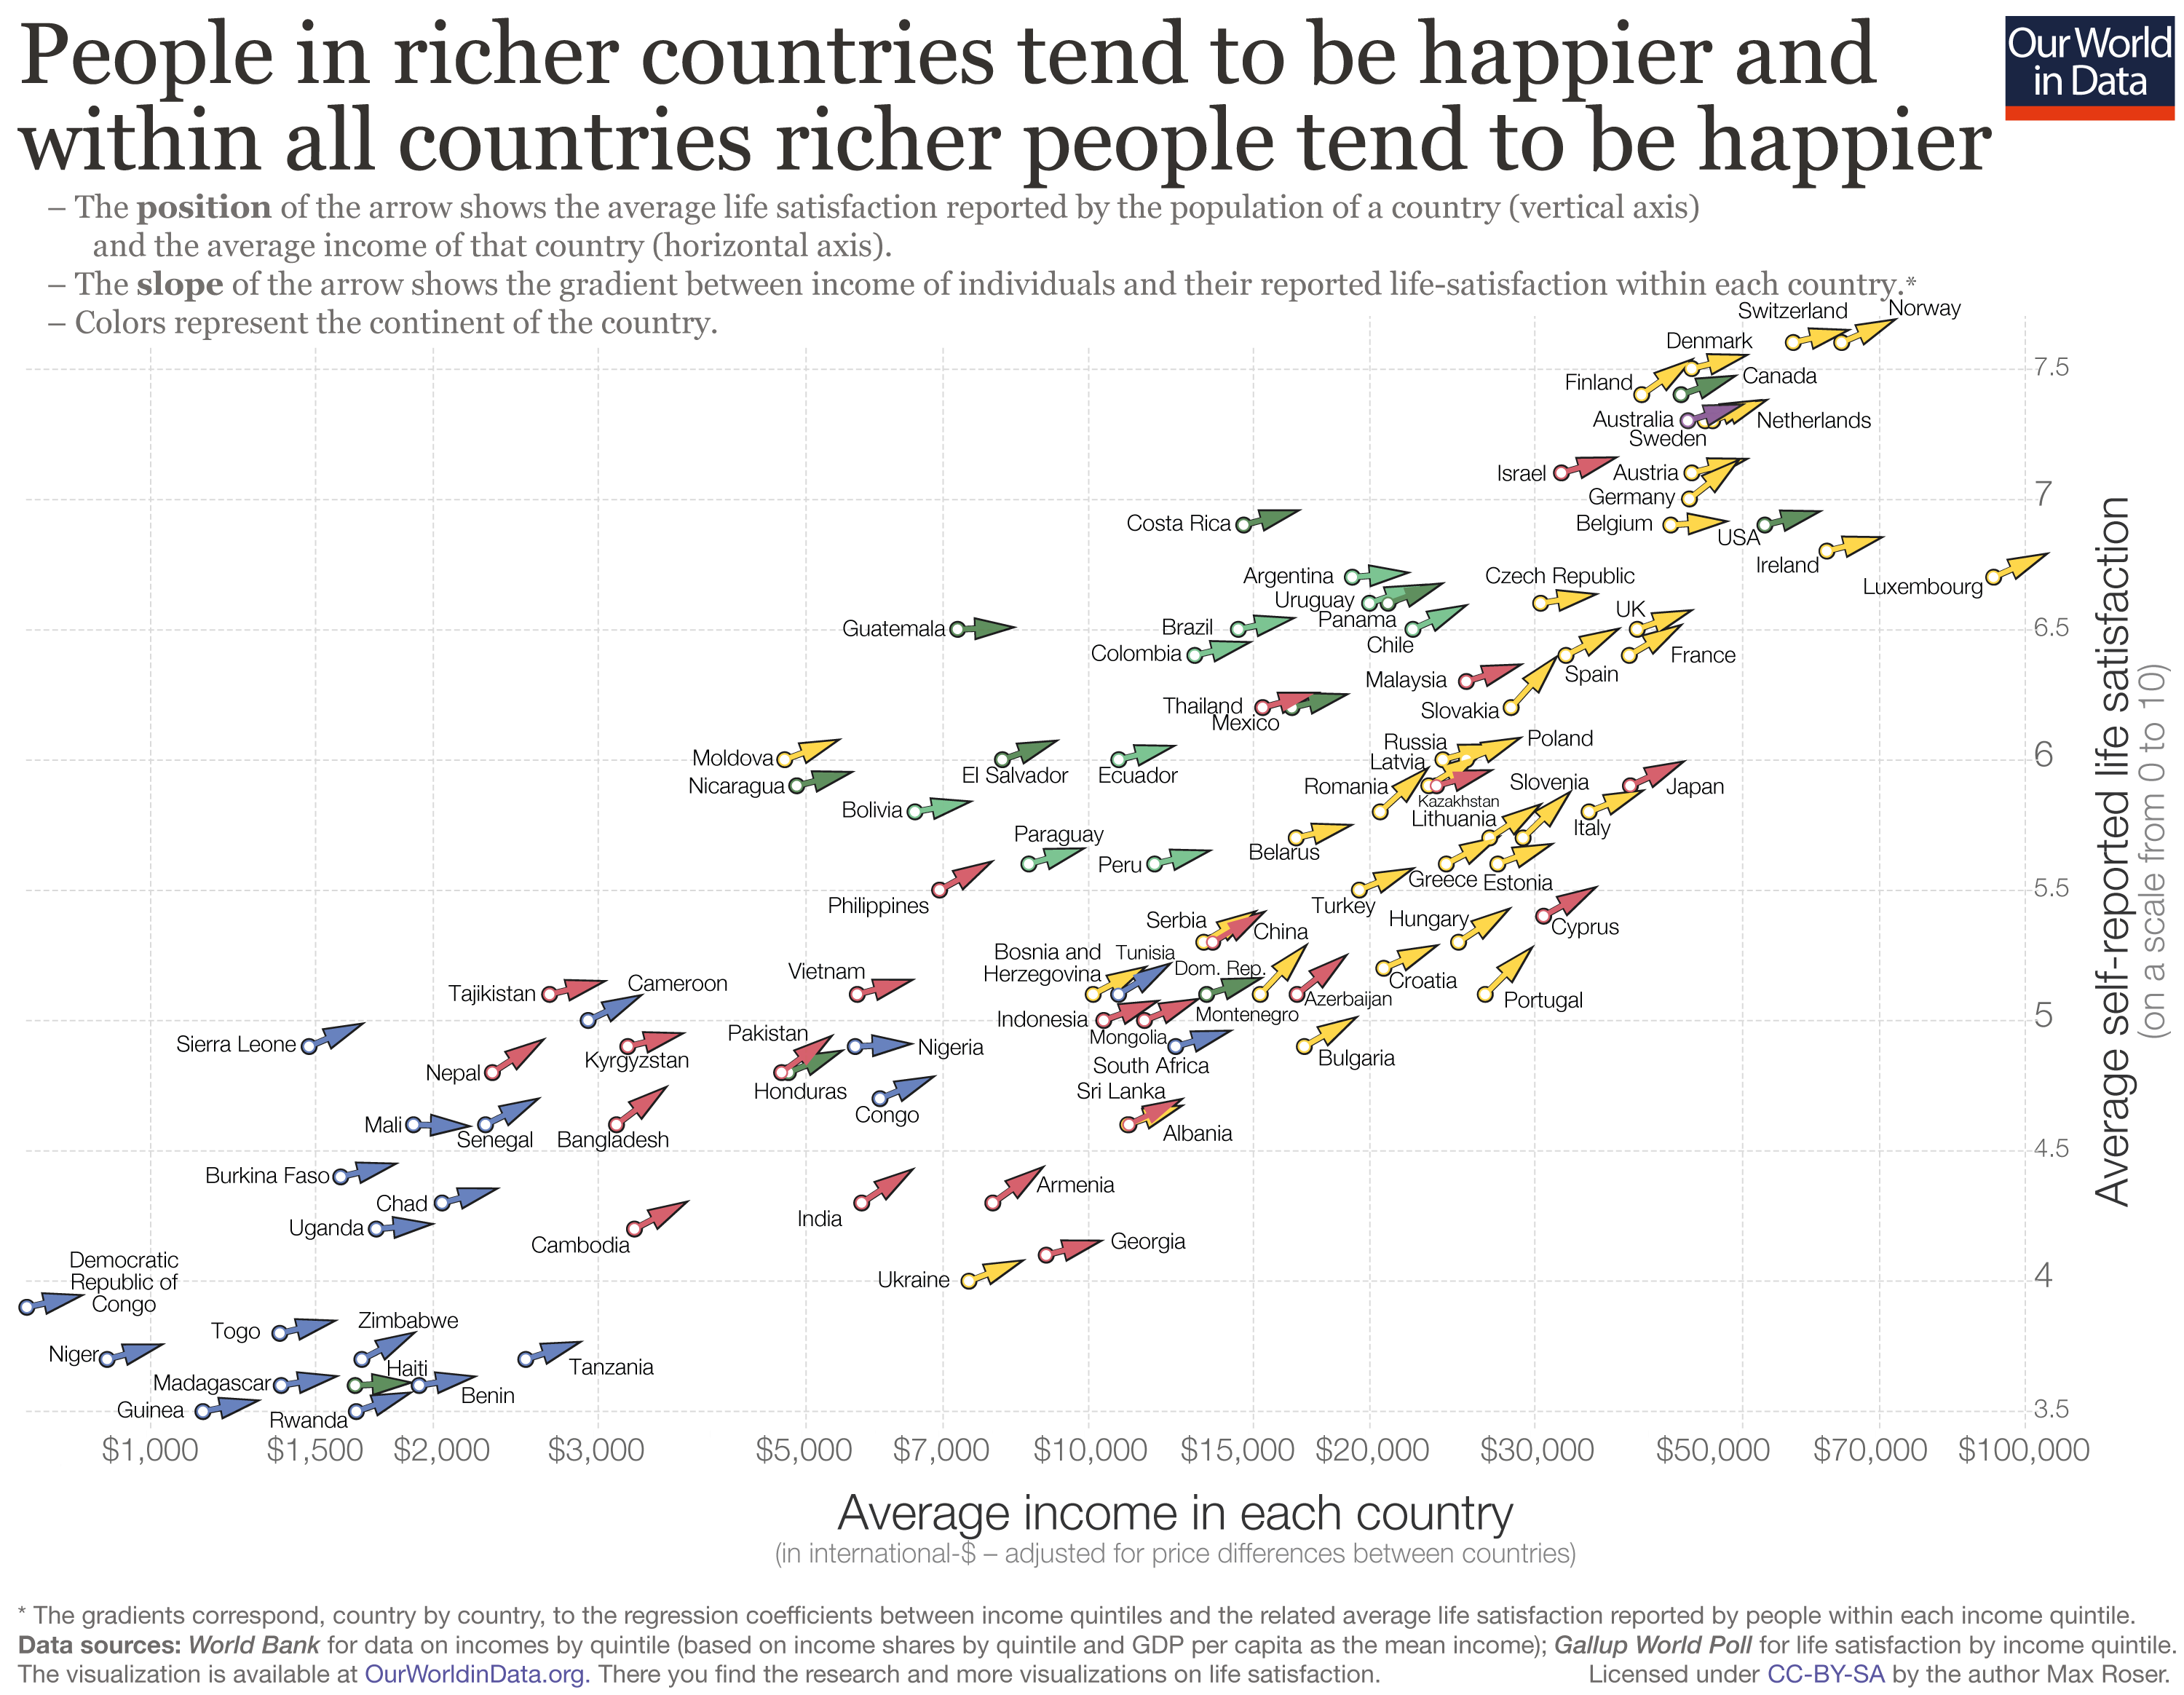 Happiness and Life Satisfaction - Our World in Data